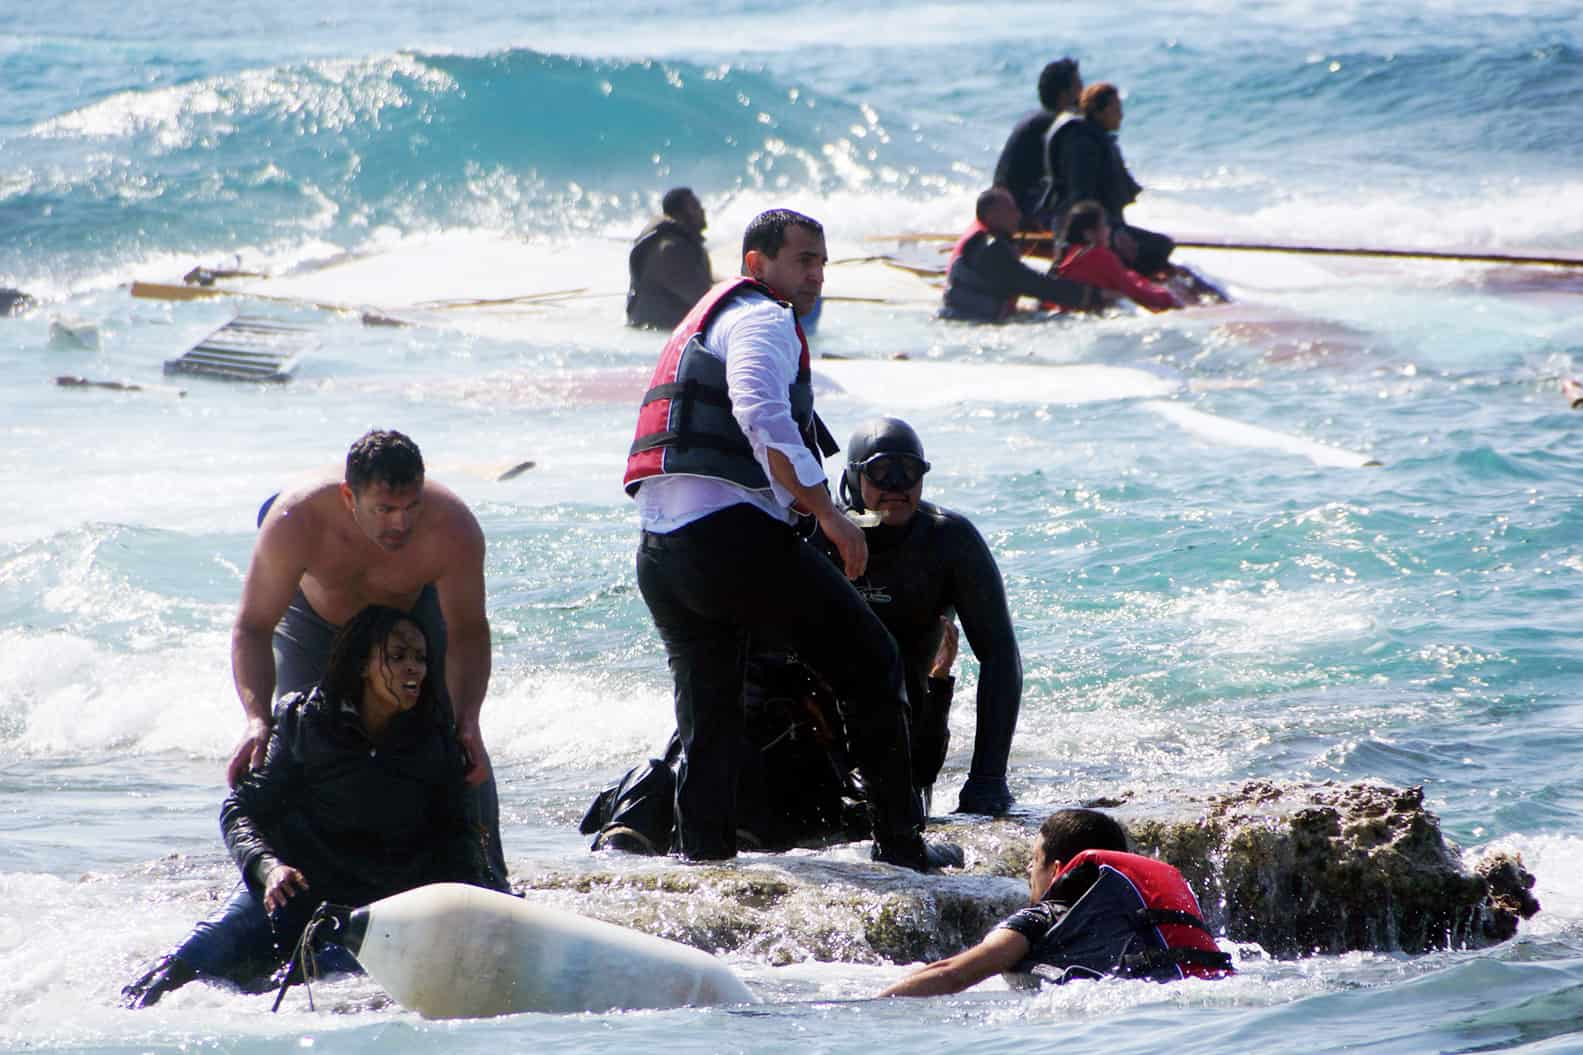 Local residents and rescue workers help a migrant woman after a boat carrying migrants sank off the island of Rhodes, southeastern Greece, on April 20, 2015.